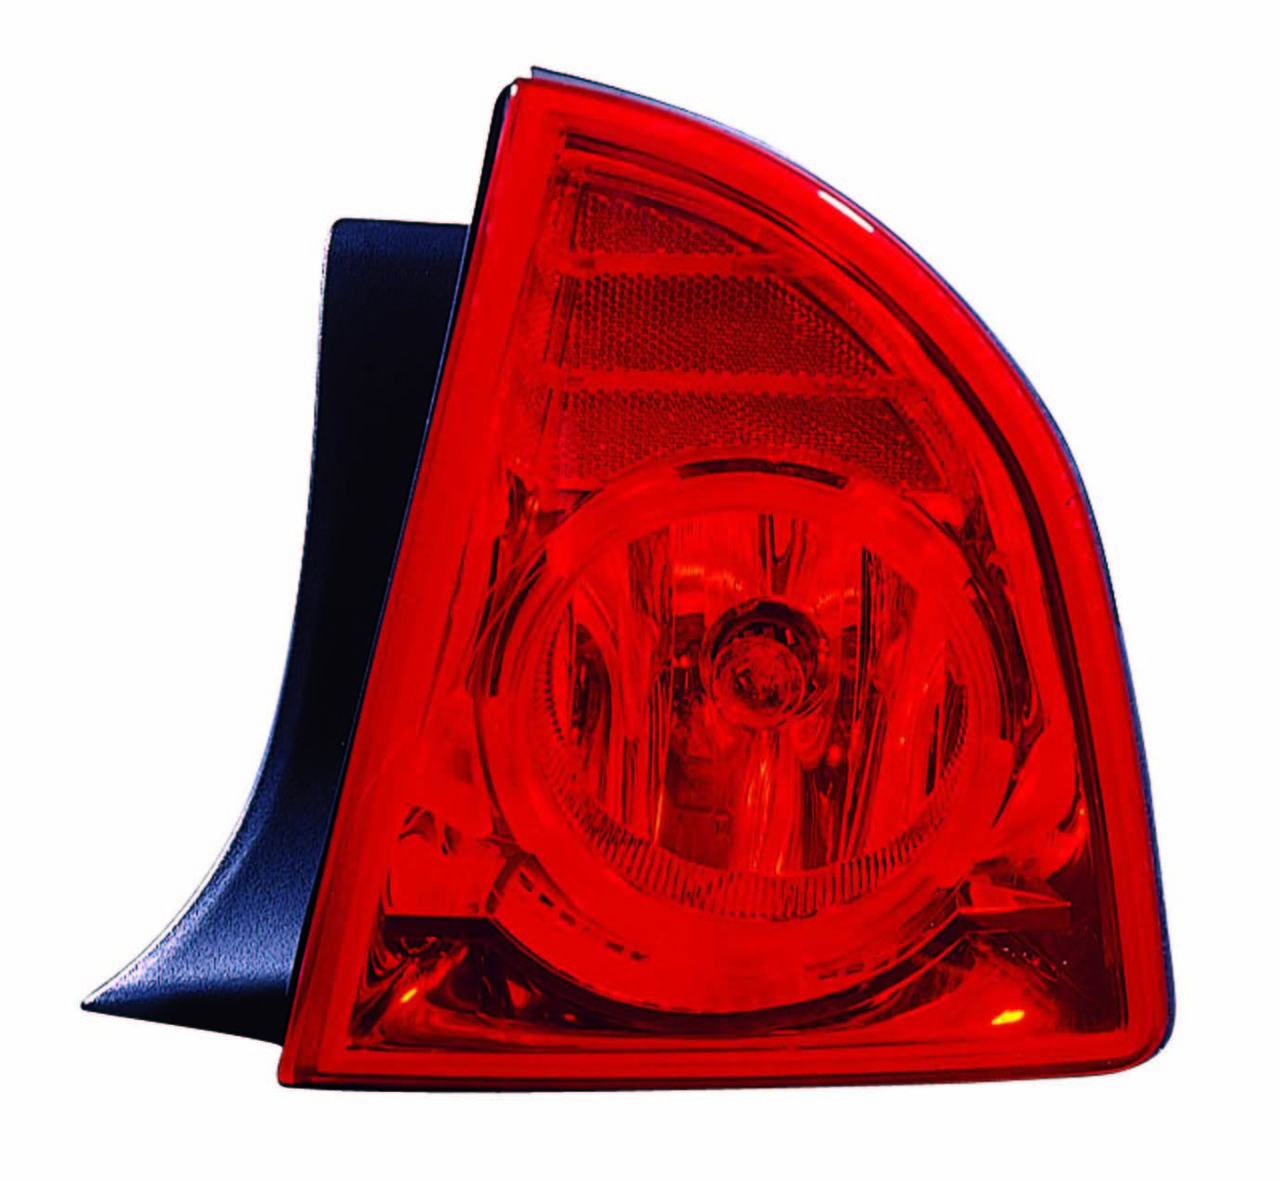 Chevrolet Malibu Sedan 2008 2009 2010 2011 2012 tail light right passenger